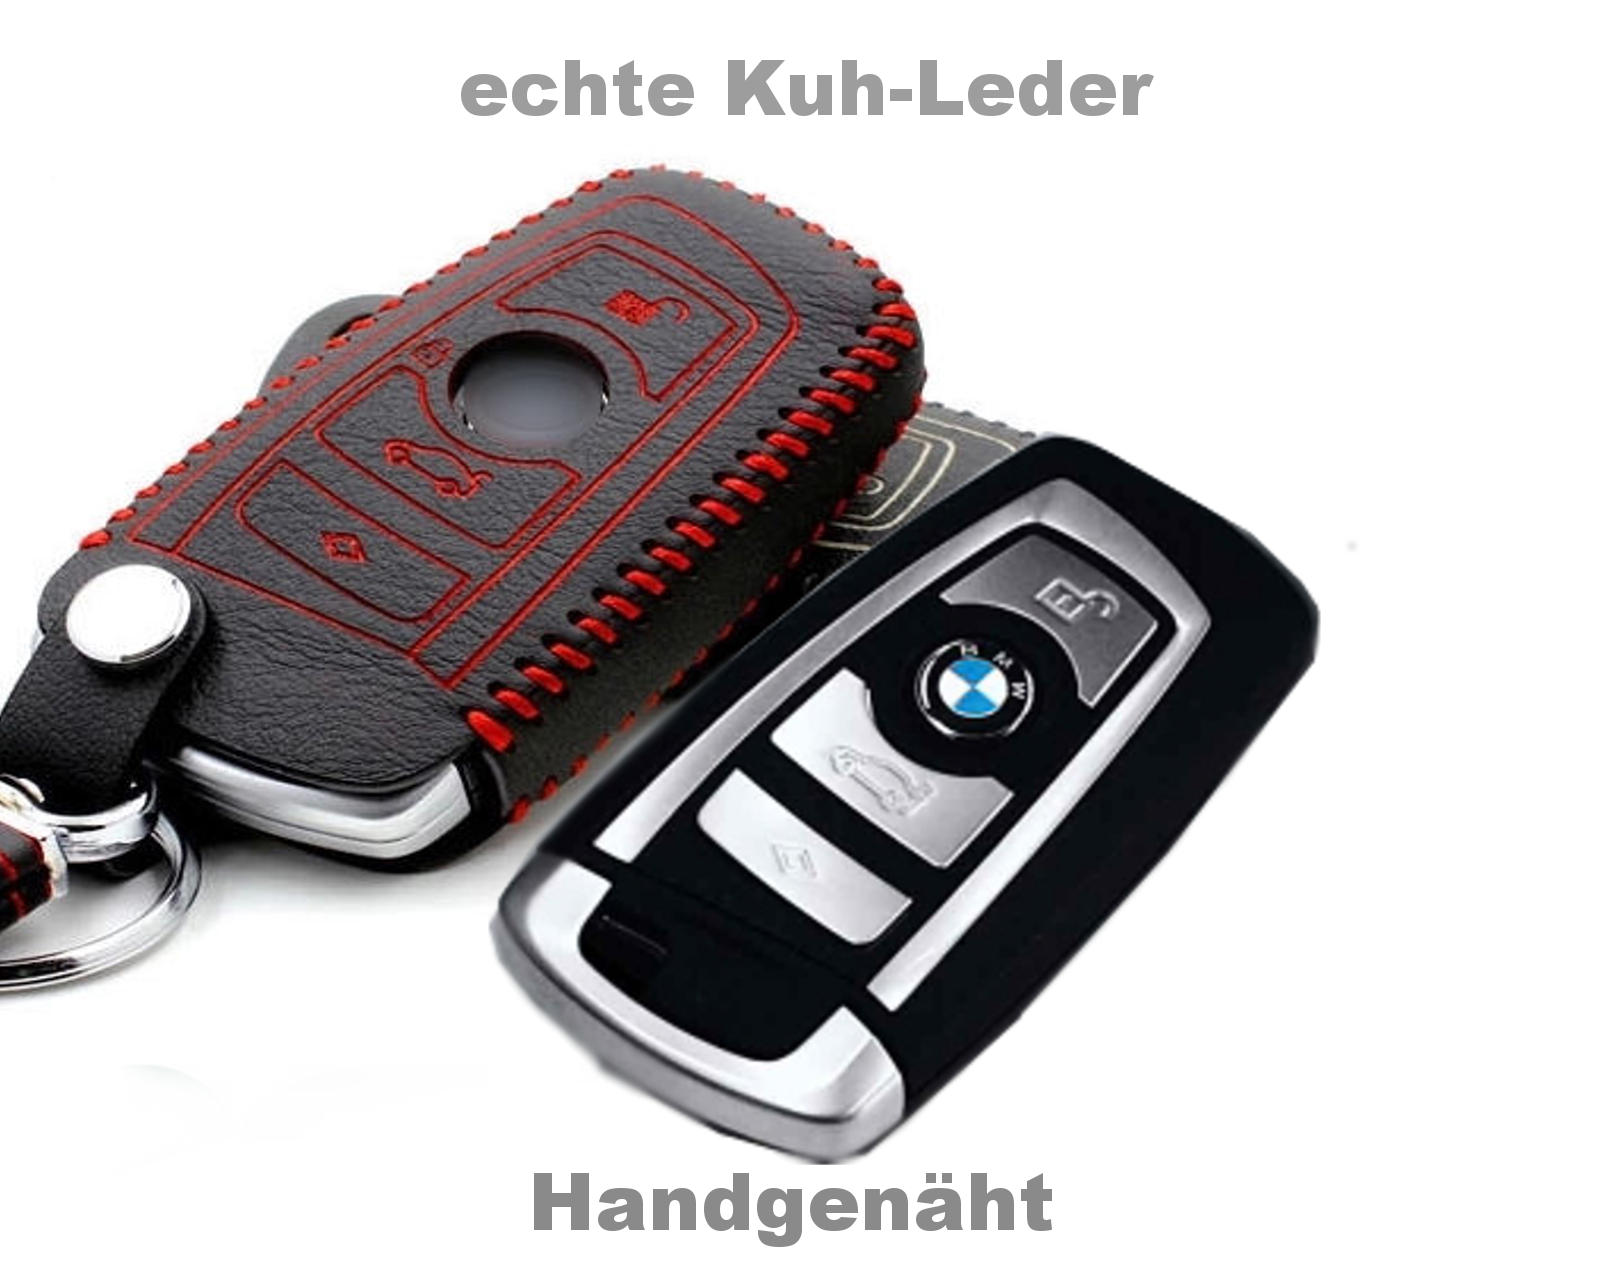 bmw x6 x5 x3 x7 leder schl ssel anh nger tasche etui. Black Bedroom Furniture Sets. Home Design Ideas